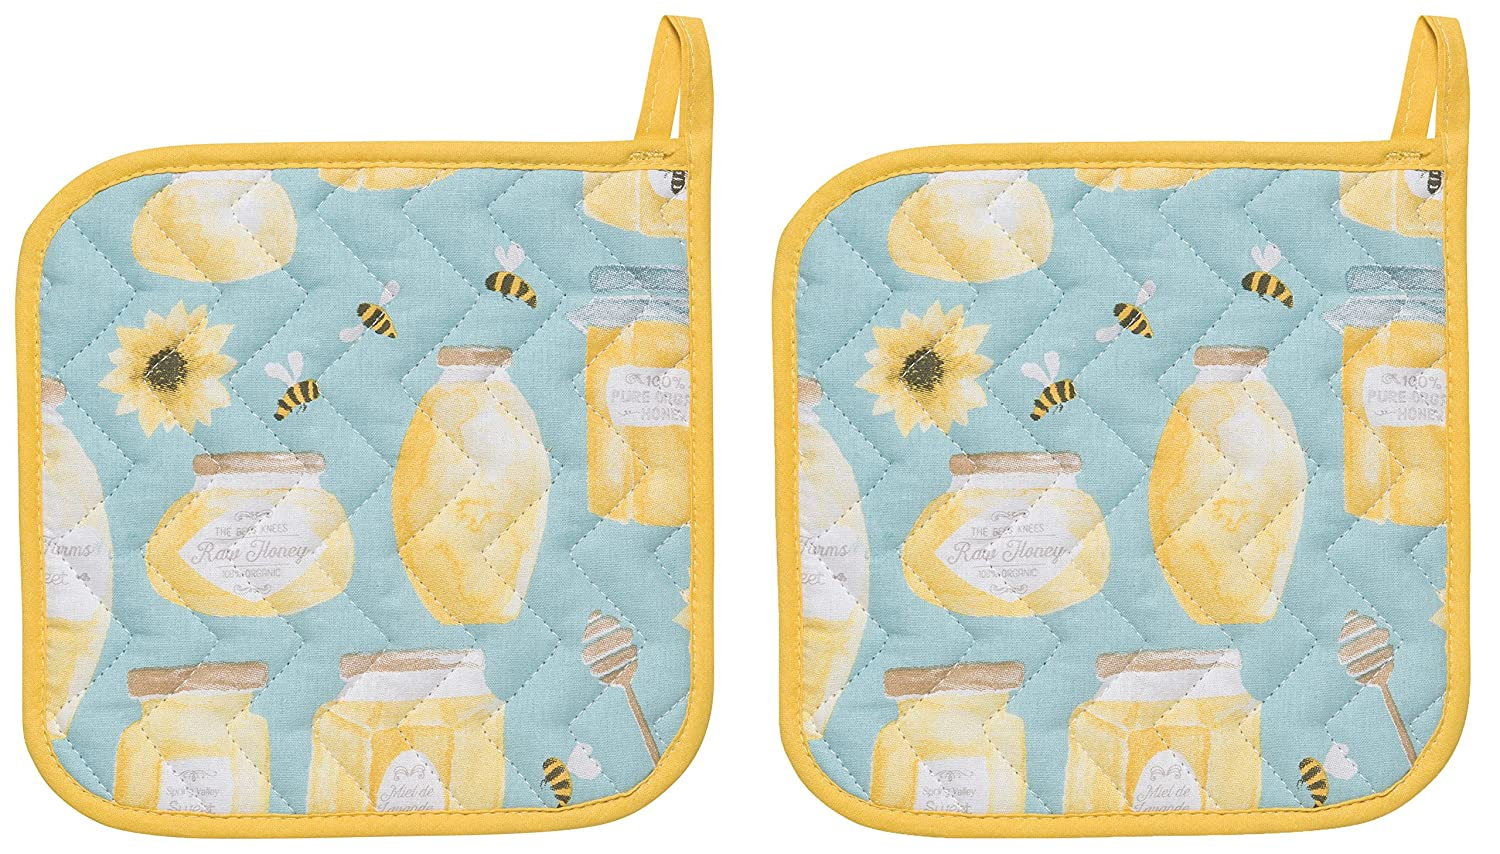 Now Designs Basic Potholders, Set of Two, Honeybee Danica Imports Ltd 505879aa